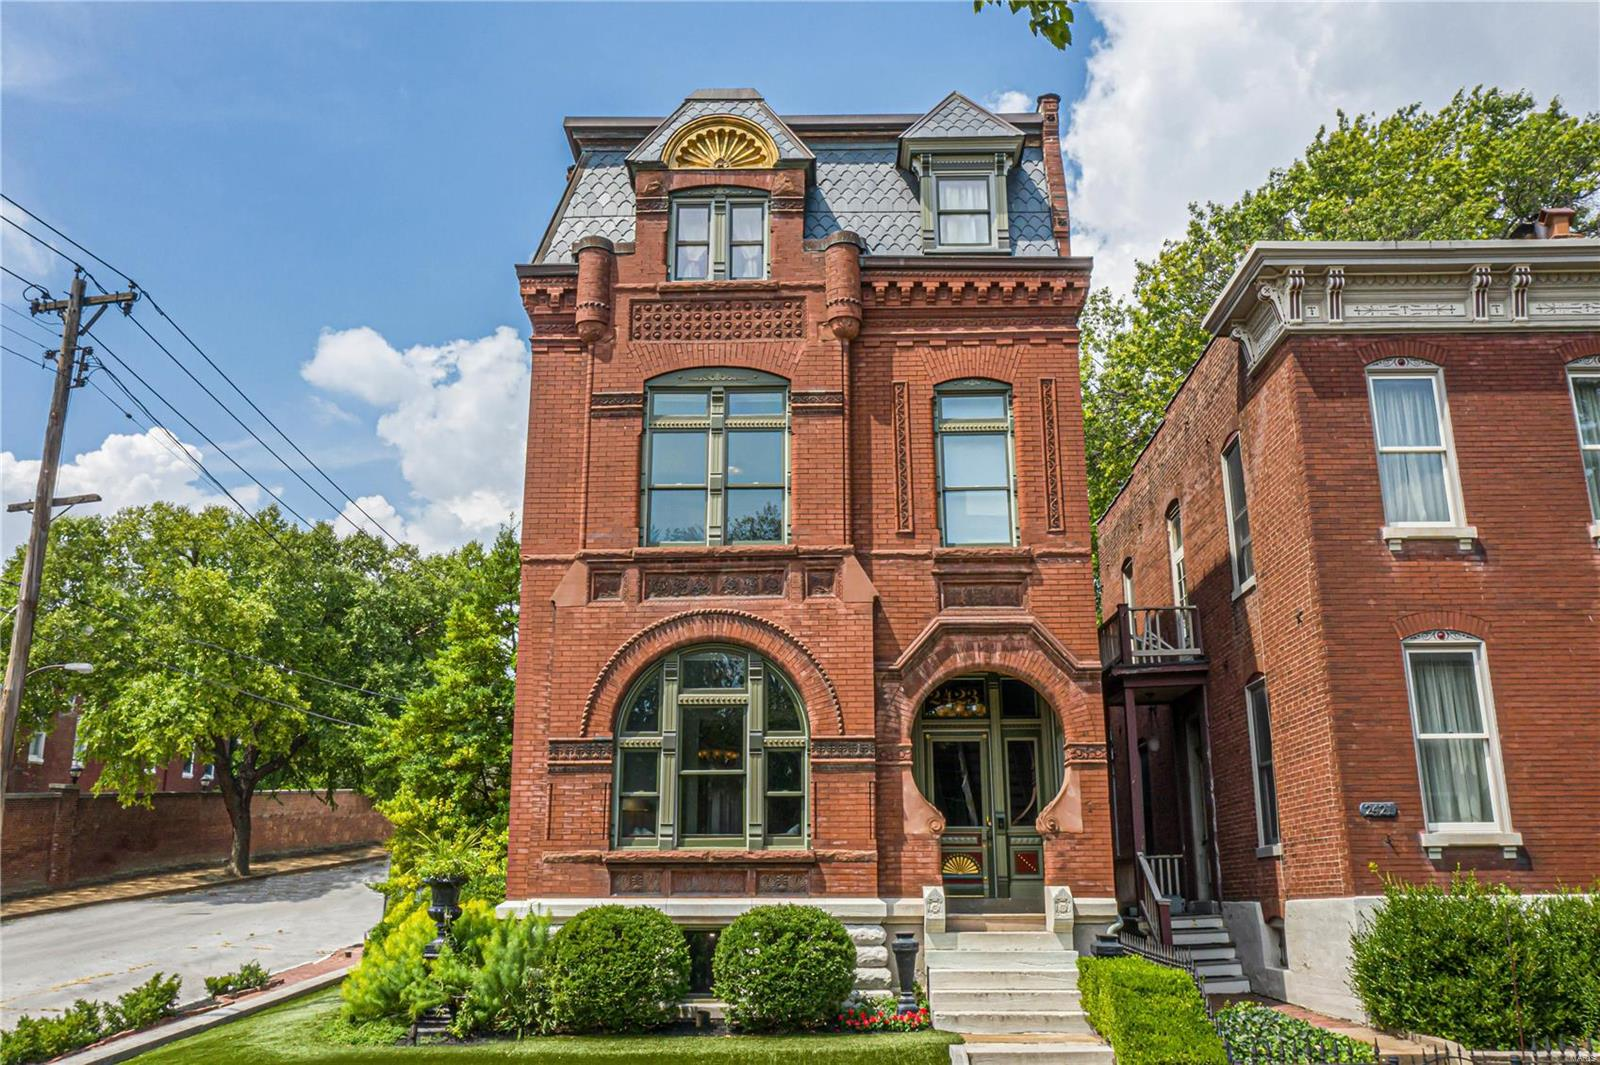 """Known as """"The Keyhole House"""" for its uniquely shaped entry, this 4,609 sq. ft., 4 bedroom, 3 bath home was built in 1890 by its original owner, Michael Reinagel, the city's premier brick mason of the 1800s. A true work of art - the home features more styles of ornamental brick, sandstone, and terra cotta than any other residence in St. Louis. Over the past 24 years, the home has been carefully curated & lovingly renovated, with attention paid to every detail. The spacious, modern 30' x 14' kitchen features a 36"""" Wolf range, premium KitchenAid appliances, honed granite countertops, 16 sets of drawers, 45 cabinets & iridescent stained glass tile. The 2nd-floor master suite features oversized dual closets, a gas fireplace, laundry room, and private bath with a spacious custom glass shower & premium Kohler fixtures. The backyard has a deck, a brick patio, and an English boxwood garden, elegantly framed by a 9' custom lattice fence. There's even a 3-car garage for your vehicles."""